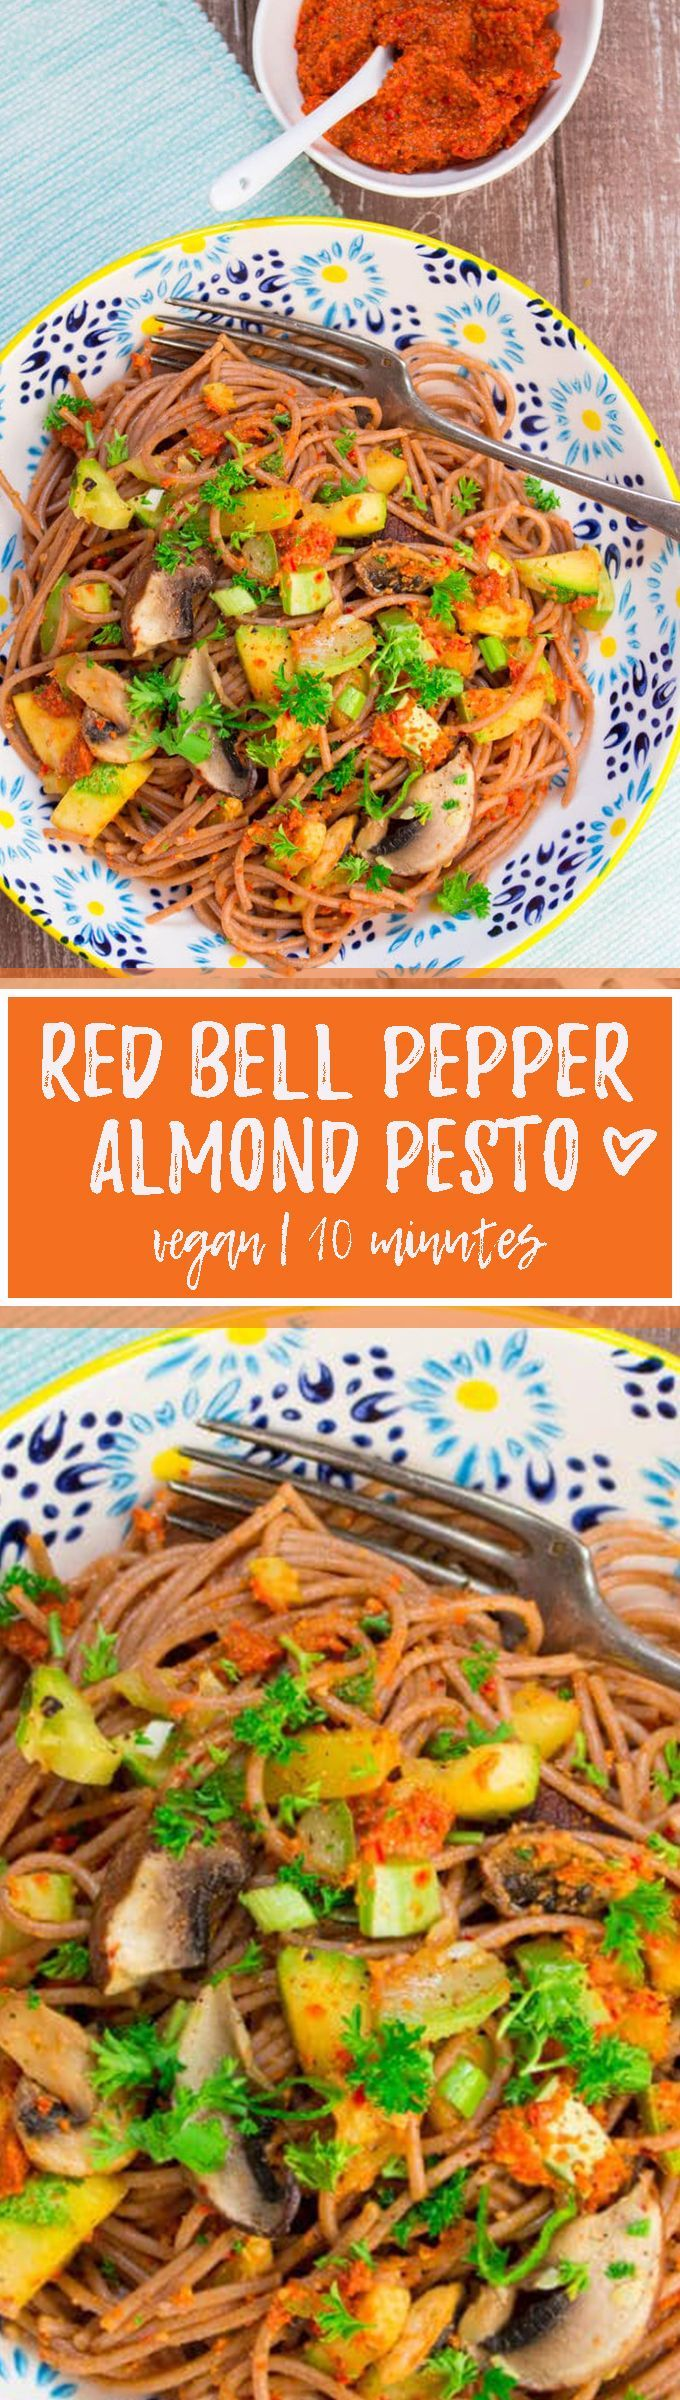 This red bell pepper almond pesto is not only super delicious but also incredibly healthy! Plus, it's vegan and super easy to make. One of my favorite vegan pasta recipes!